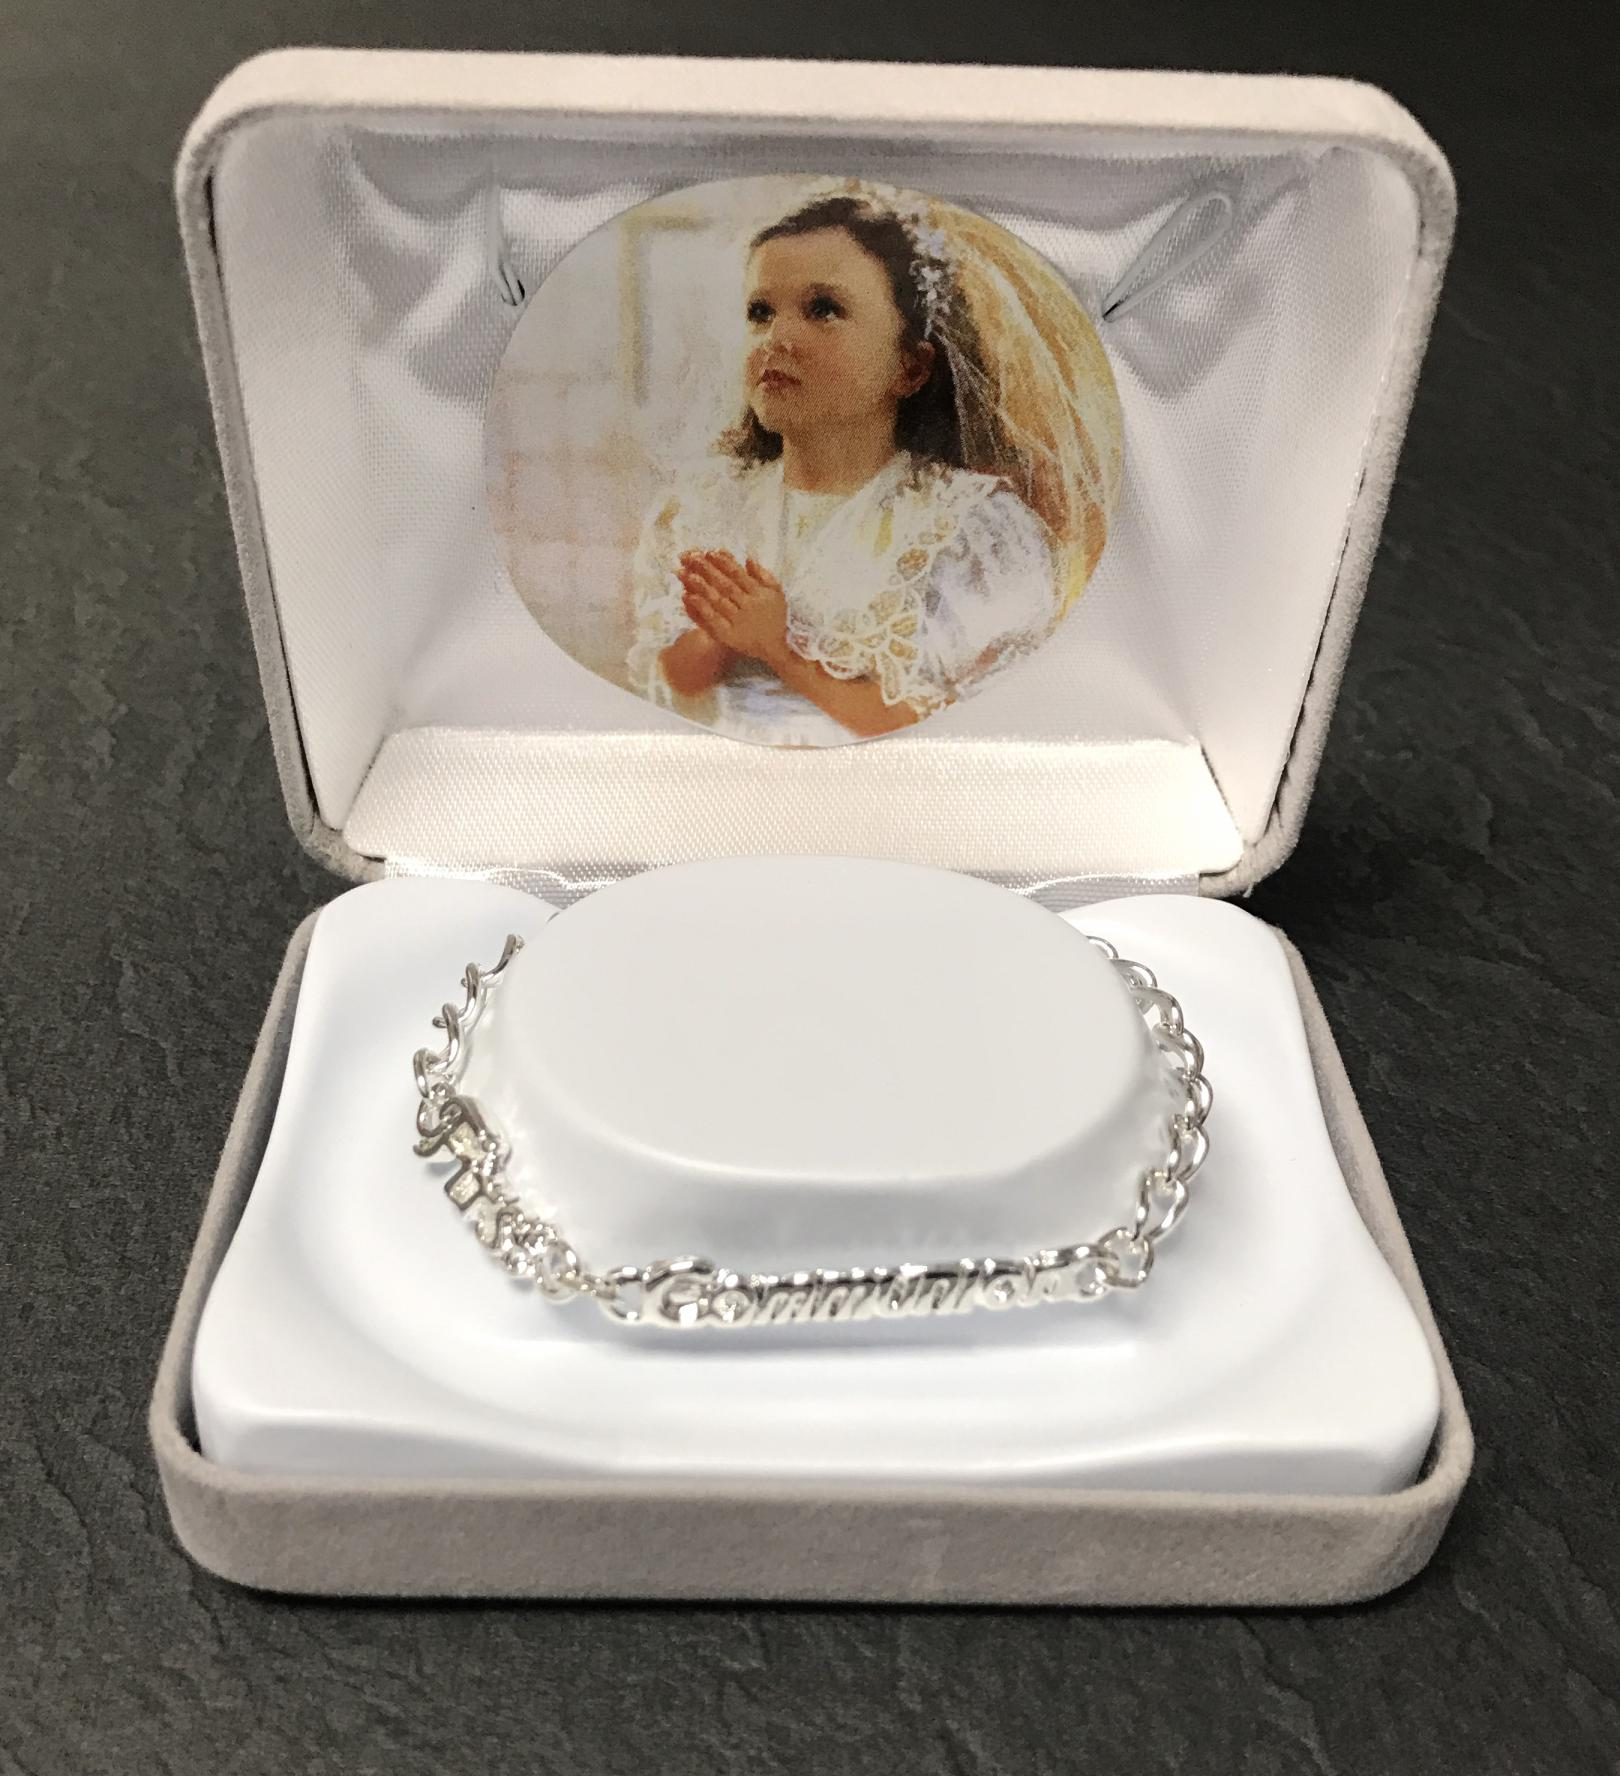 SILVER FIRST COMMUNION BRACELET GIFT BOXED